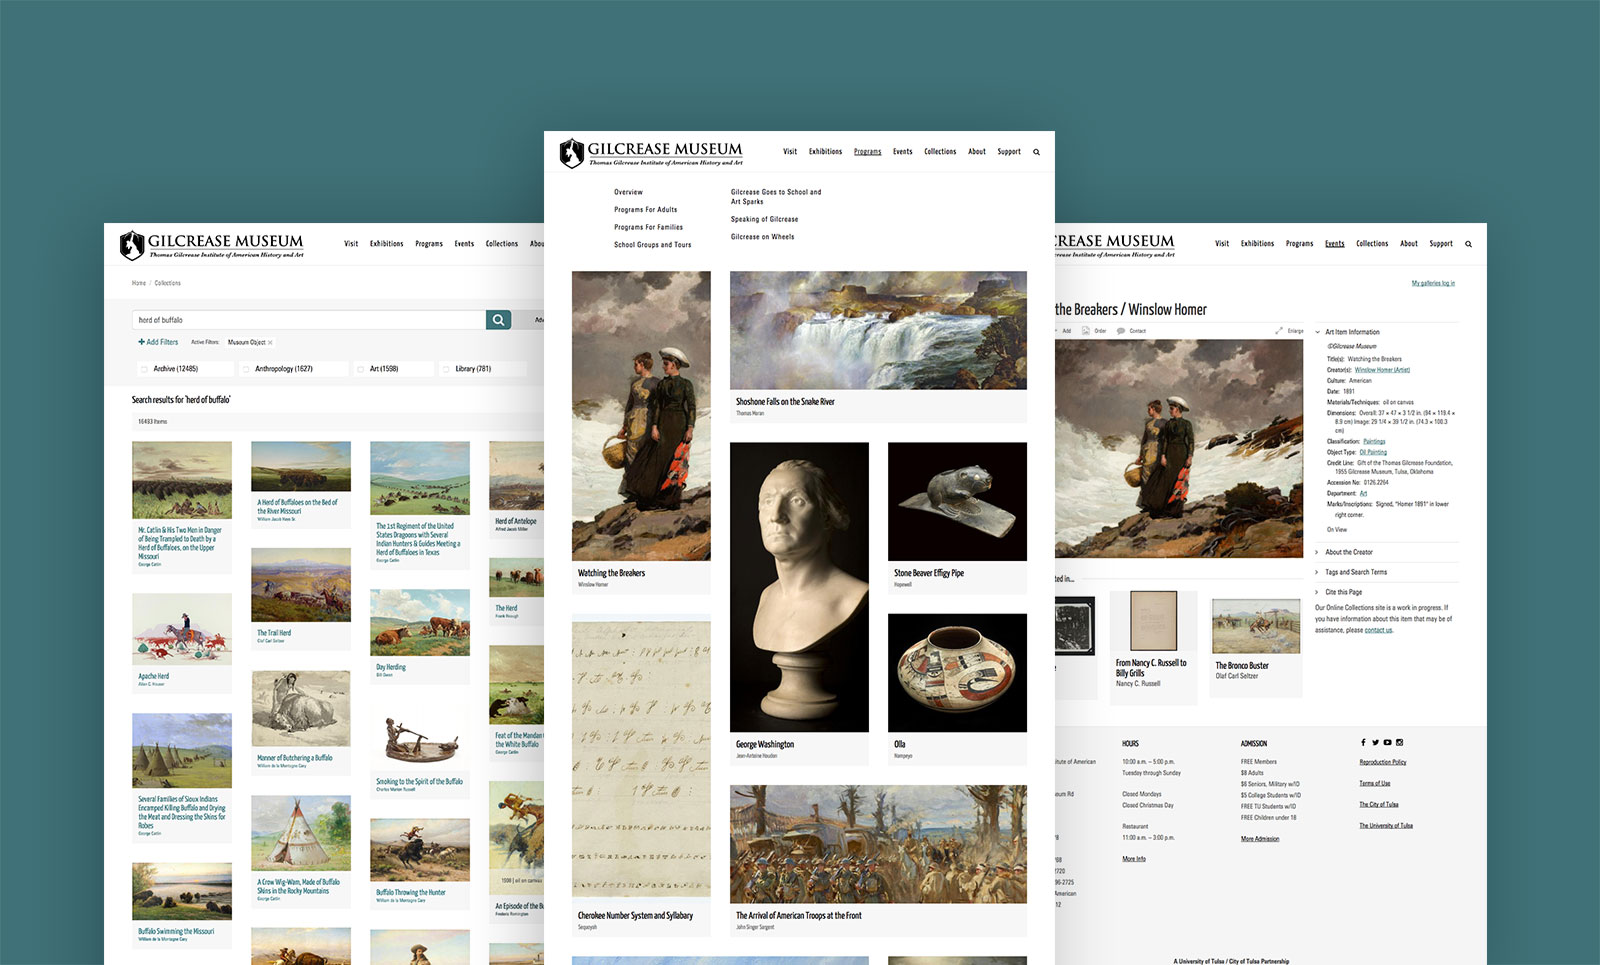 Gilcrease Museum Online Collections